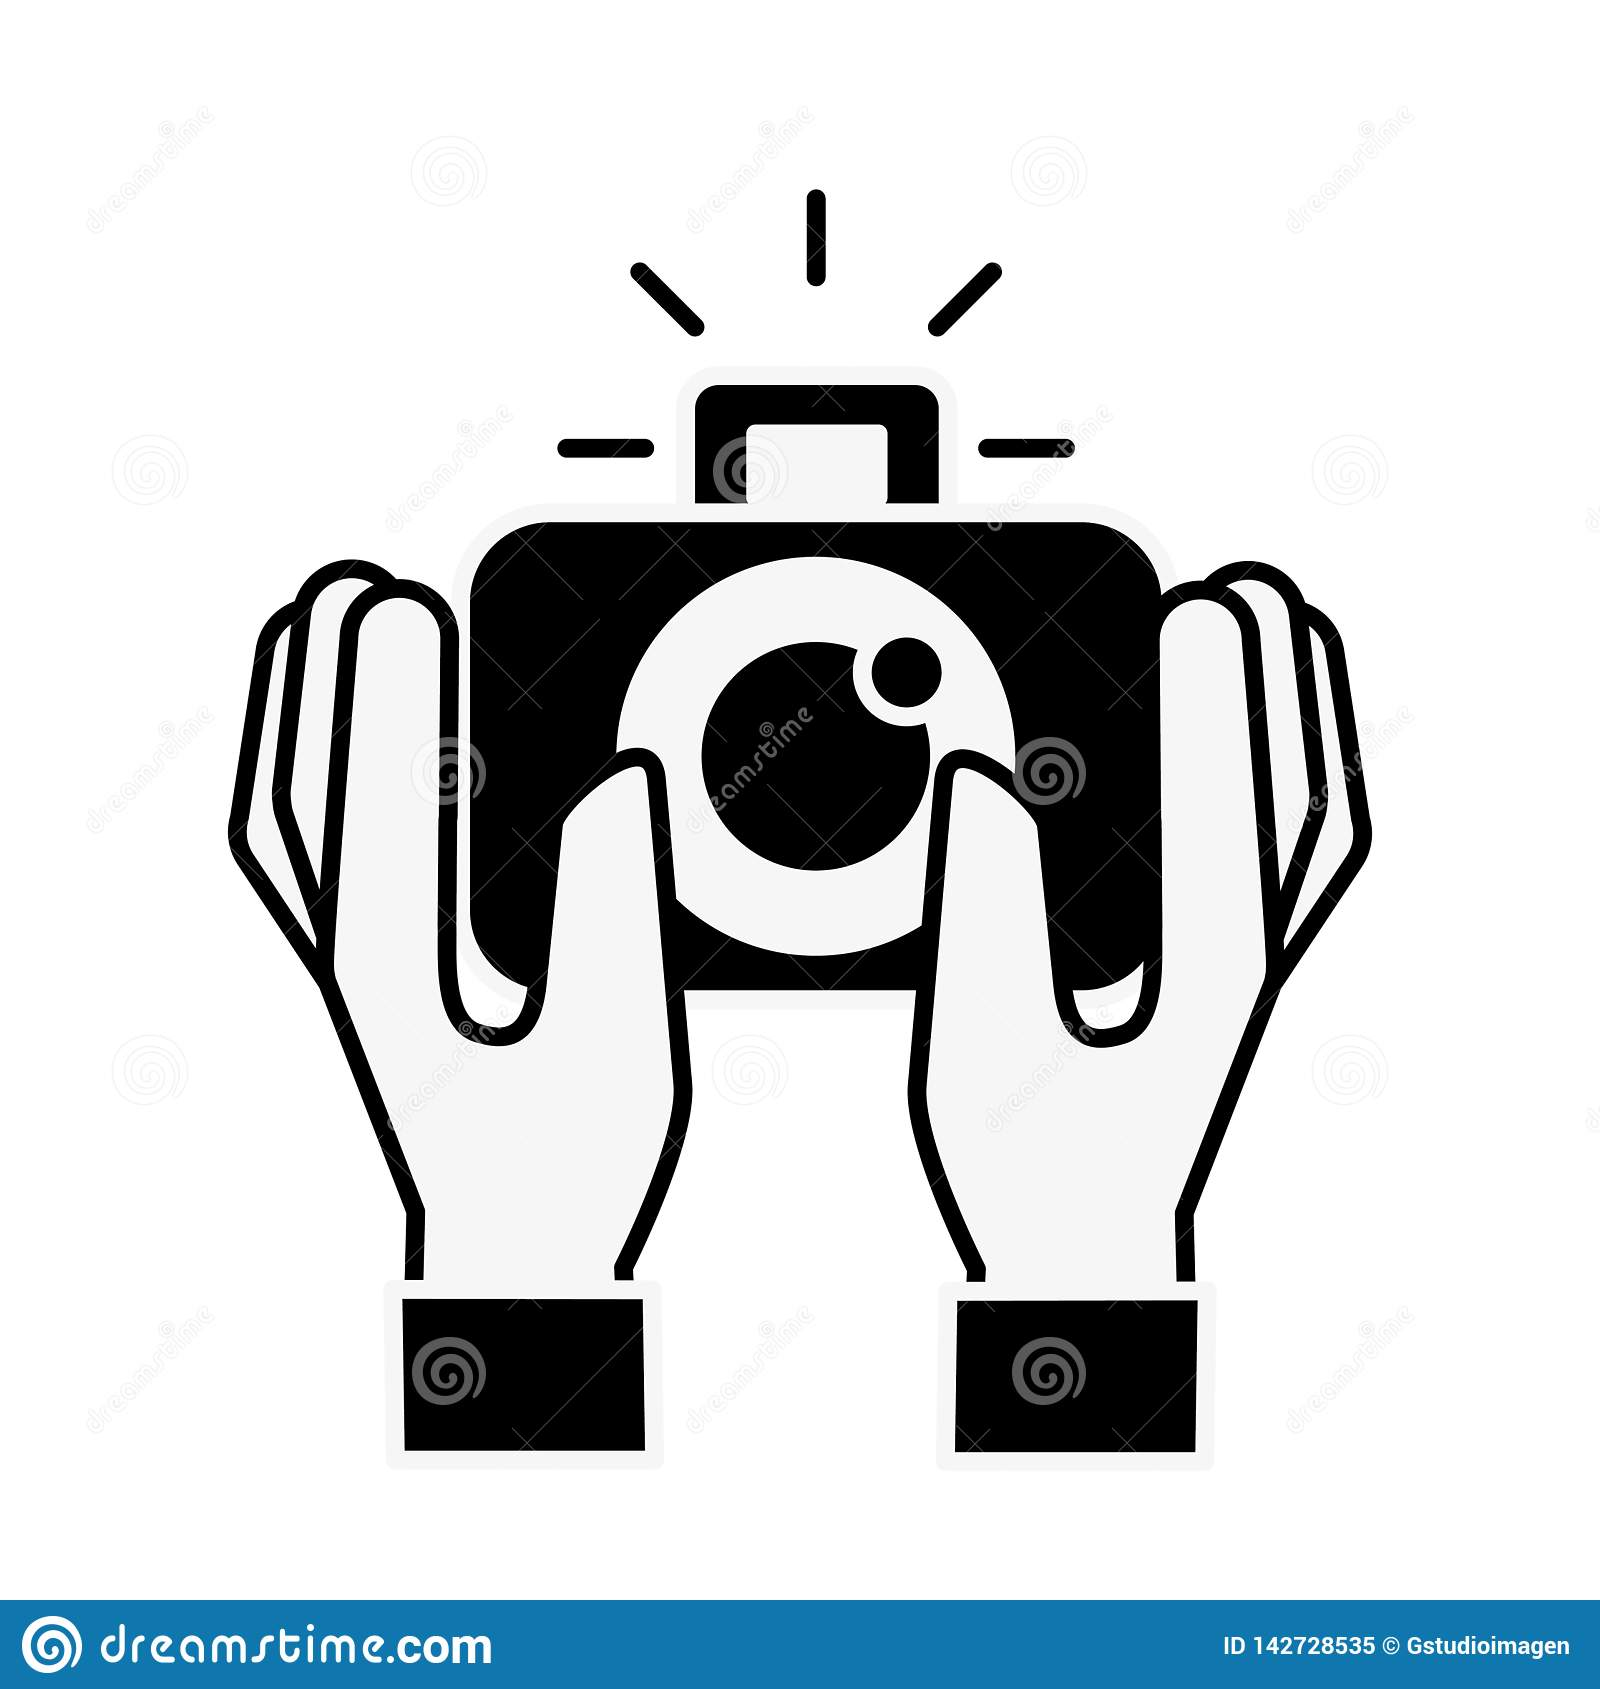 Hands holding photographic camera gadget. Vector illustration monochrome royalty free stock photo